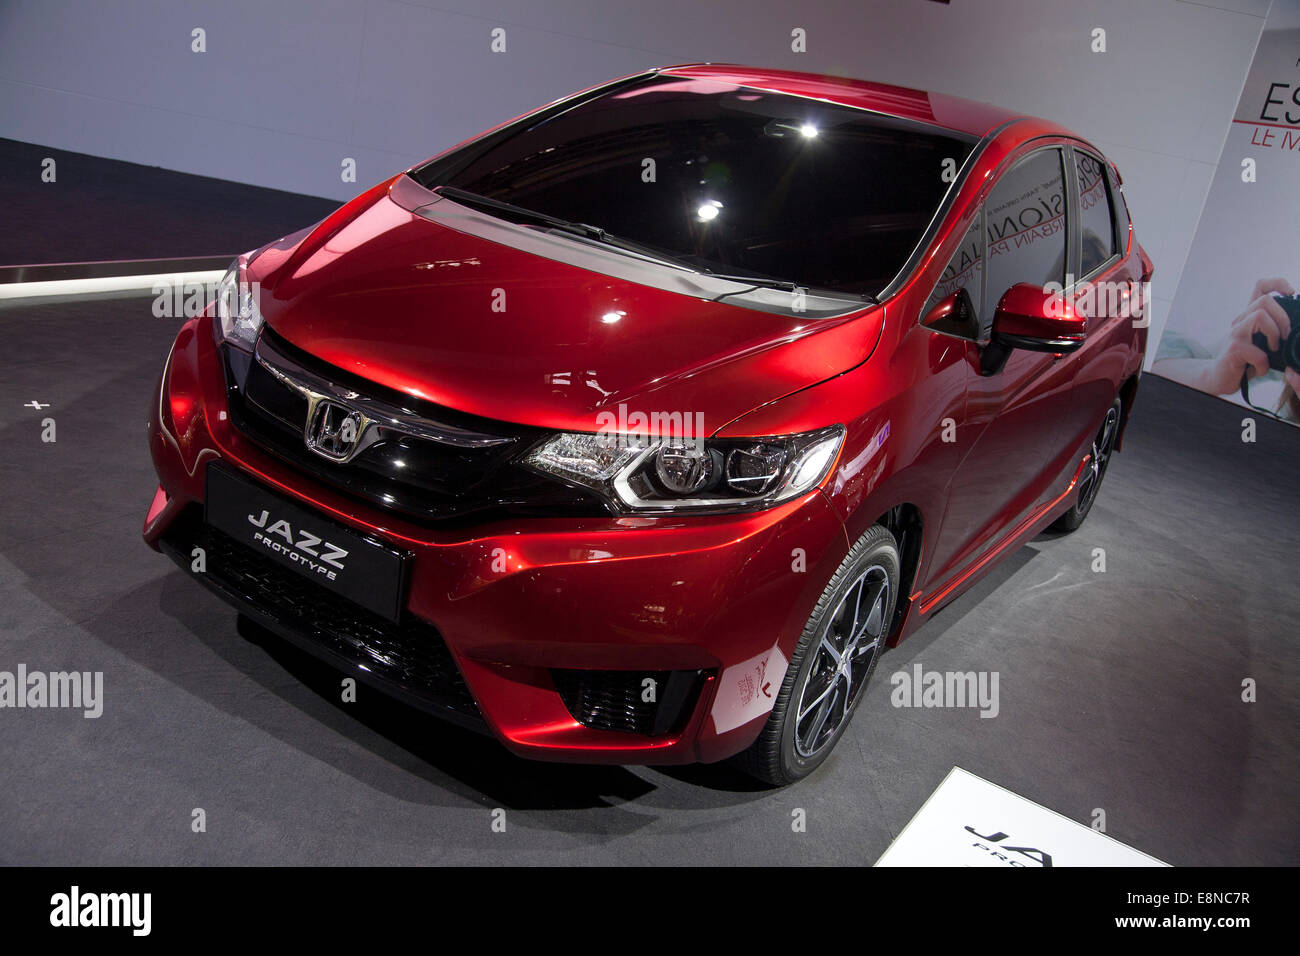 honda jazz prototype paris motor show mondial de l 39 automobile 2014 stock photo royalty free. Black Bedroom Furniture Sets. Home Design Ideas